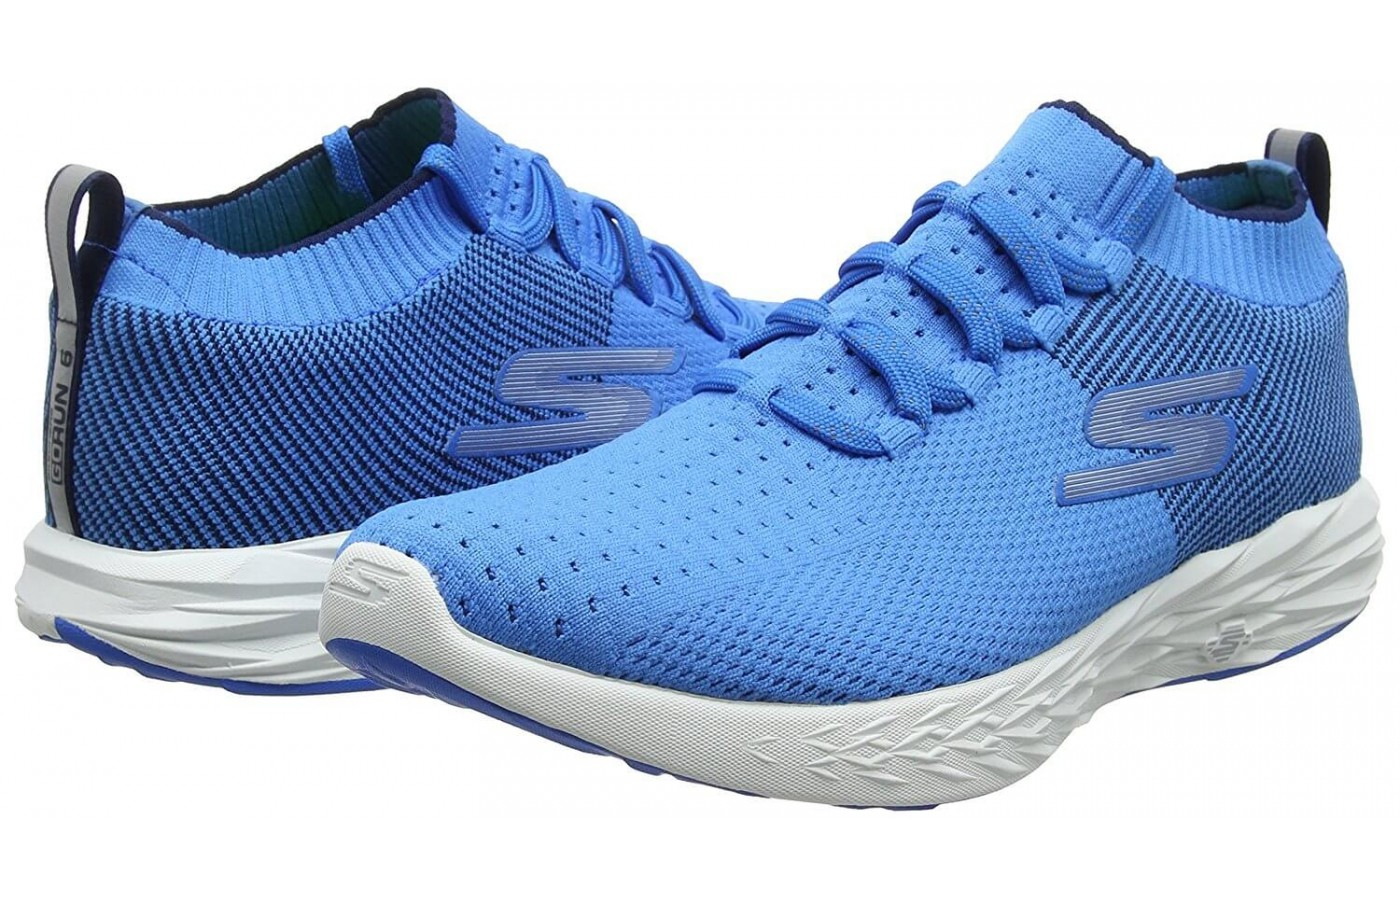 The Skechers GoRun 6 has a new knit upper design with a sock-like fit